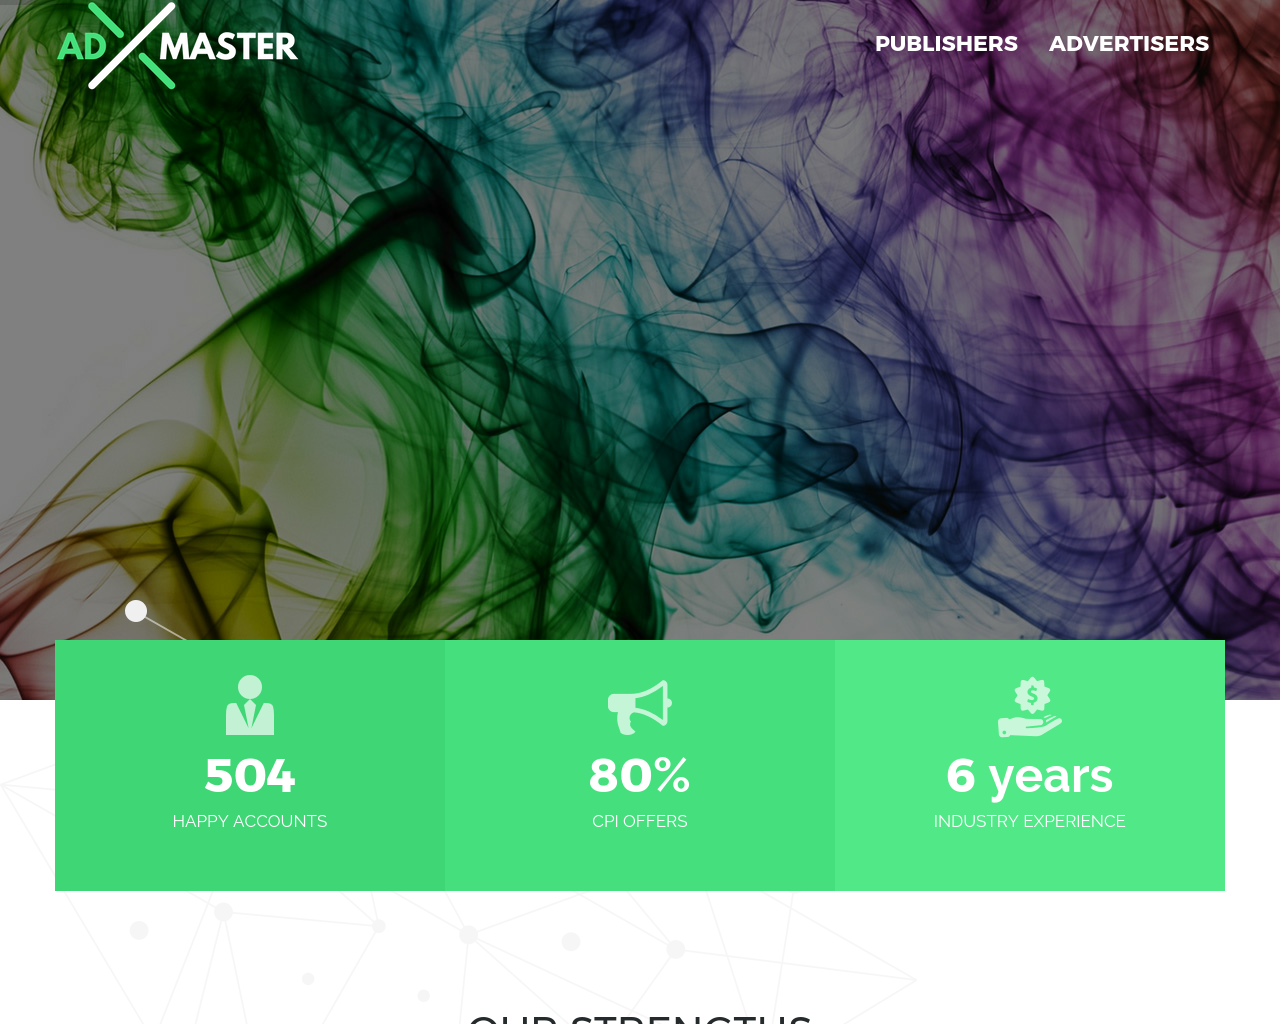 ADX-Master-Advertising-Reviews-Pricing